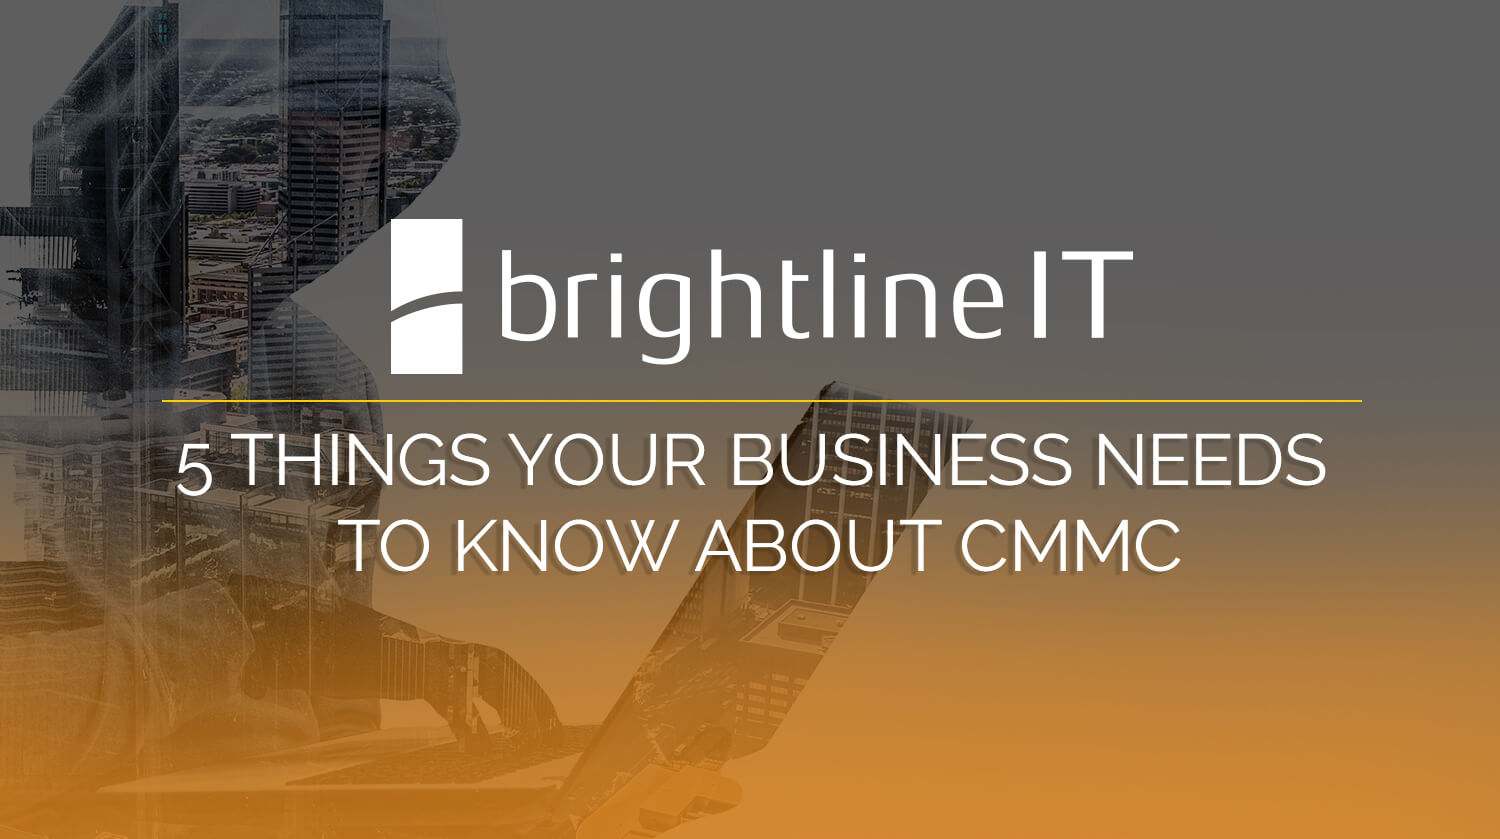 5 Things Your Business Needs to Know about CMMC